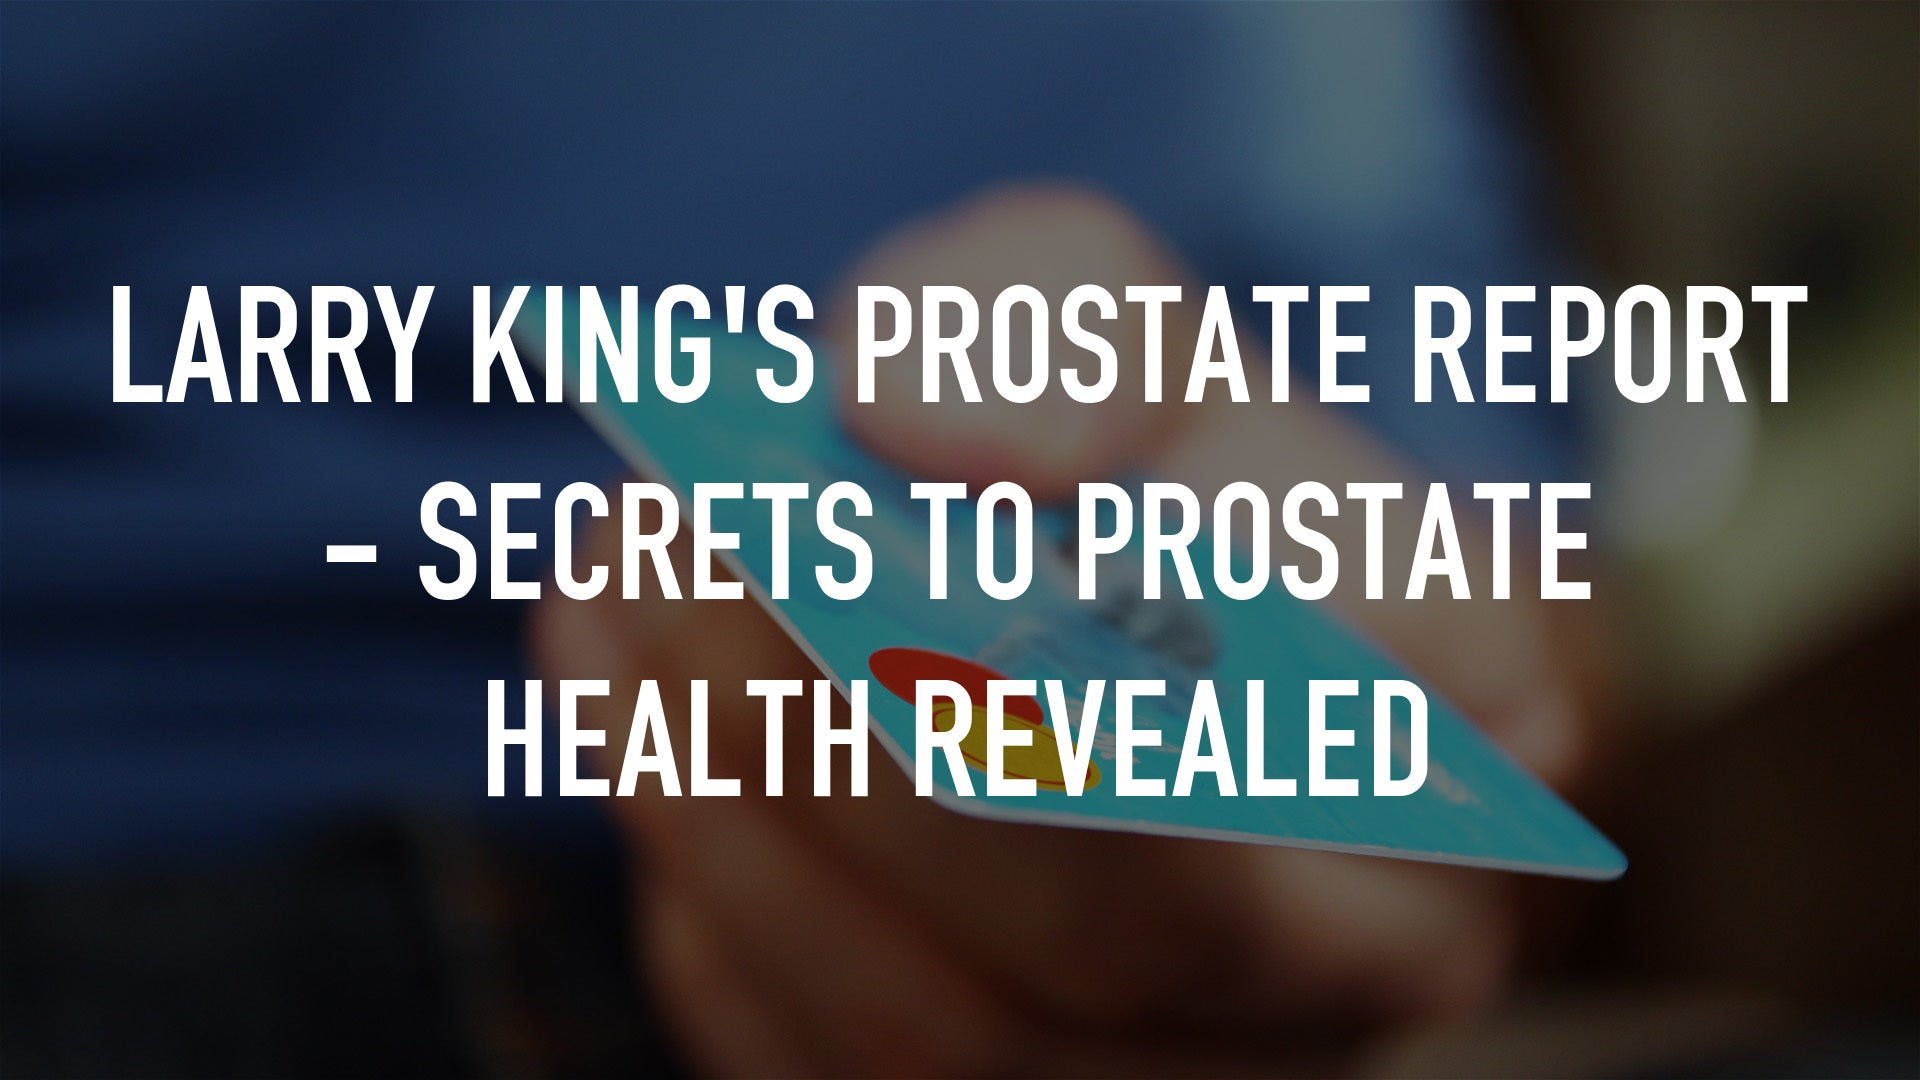 Larry King's Prostate Report - Secrets To Prostate Health Revealed